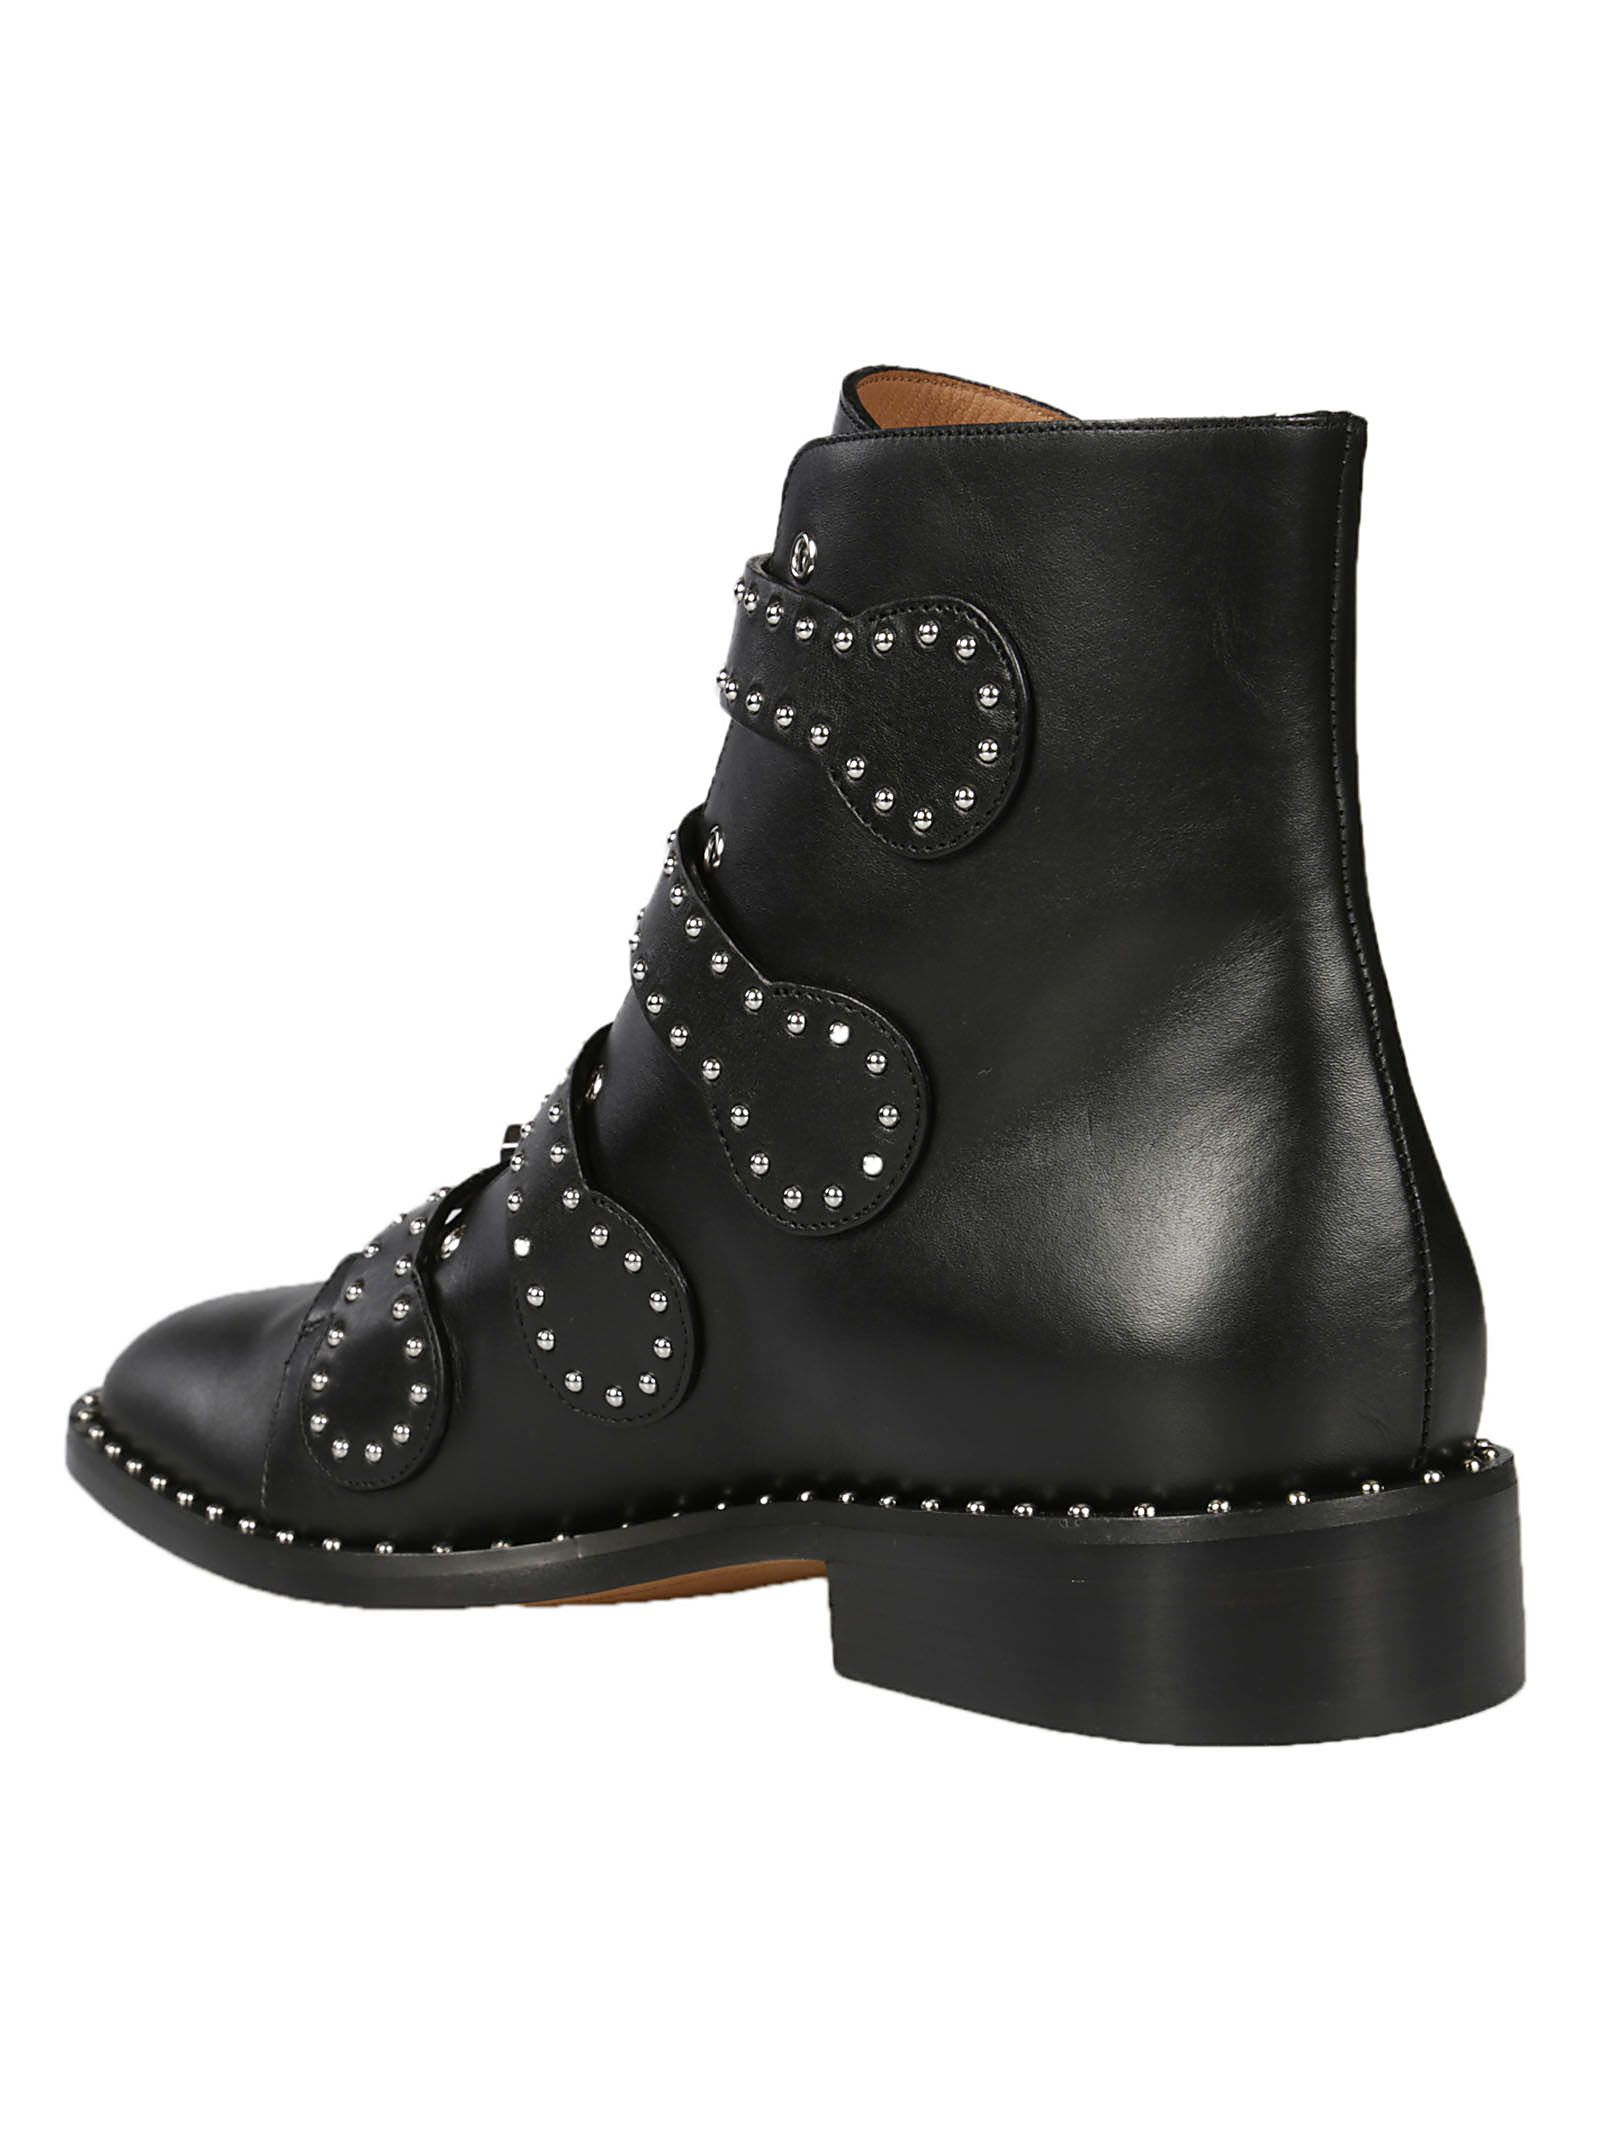 Givenchy Givenchy Rivets Ankle Boots Black Women39s